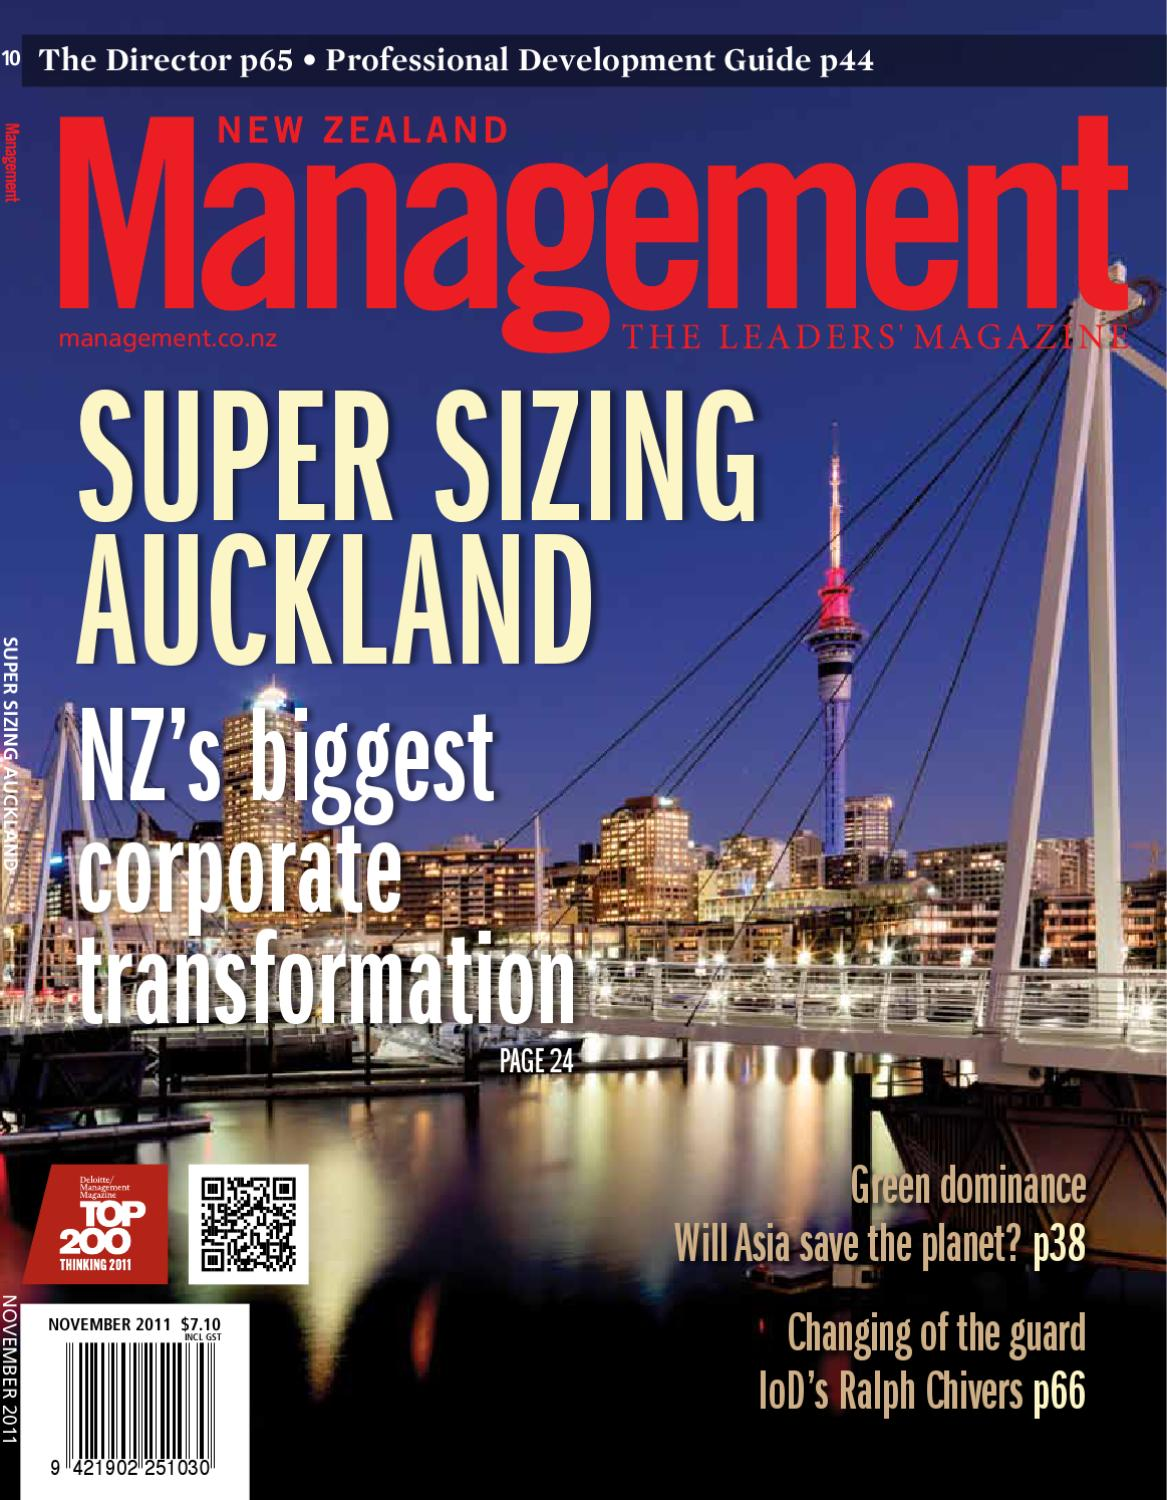 Management November 2011 By Mediaweb Issuu Tendencies Kaos Im Flying Helmet Abu Tua S